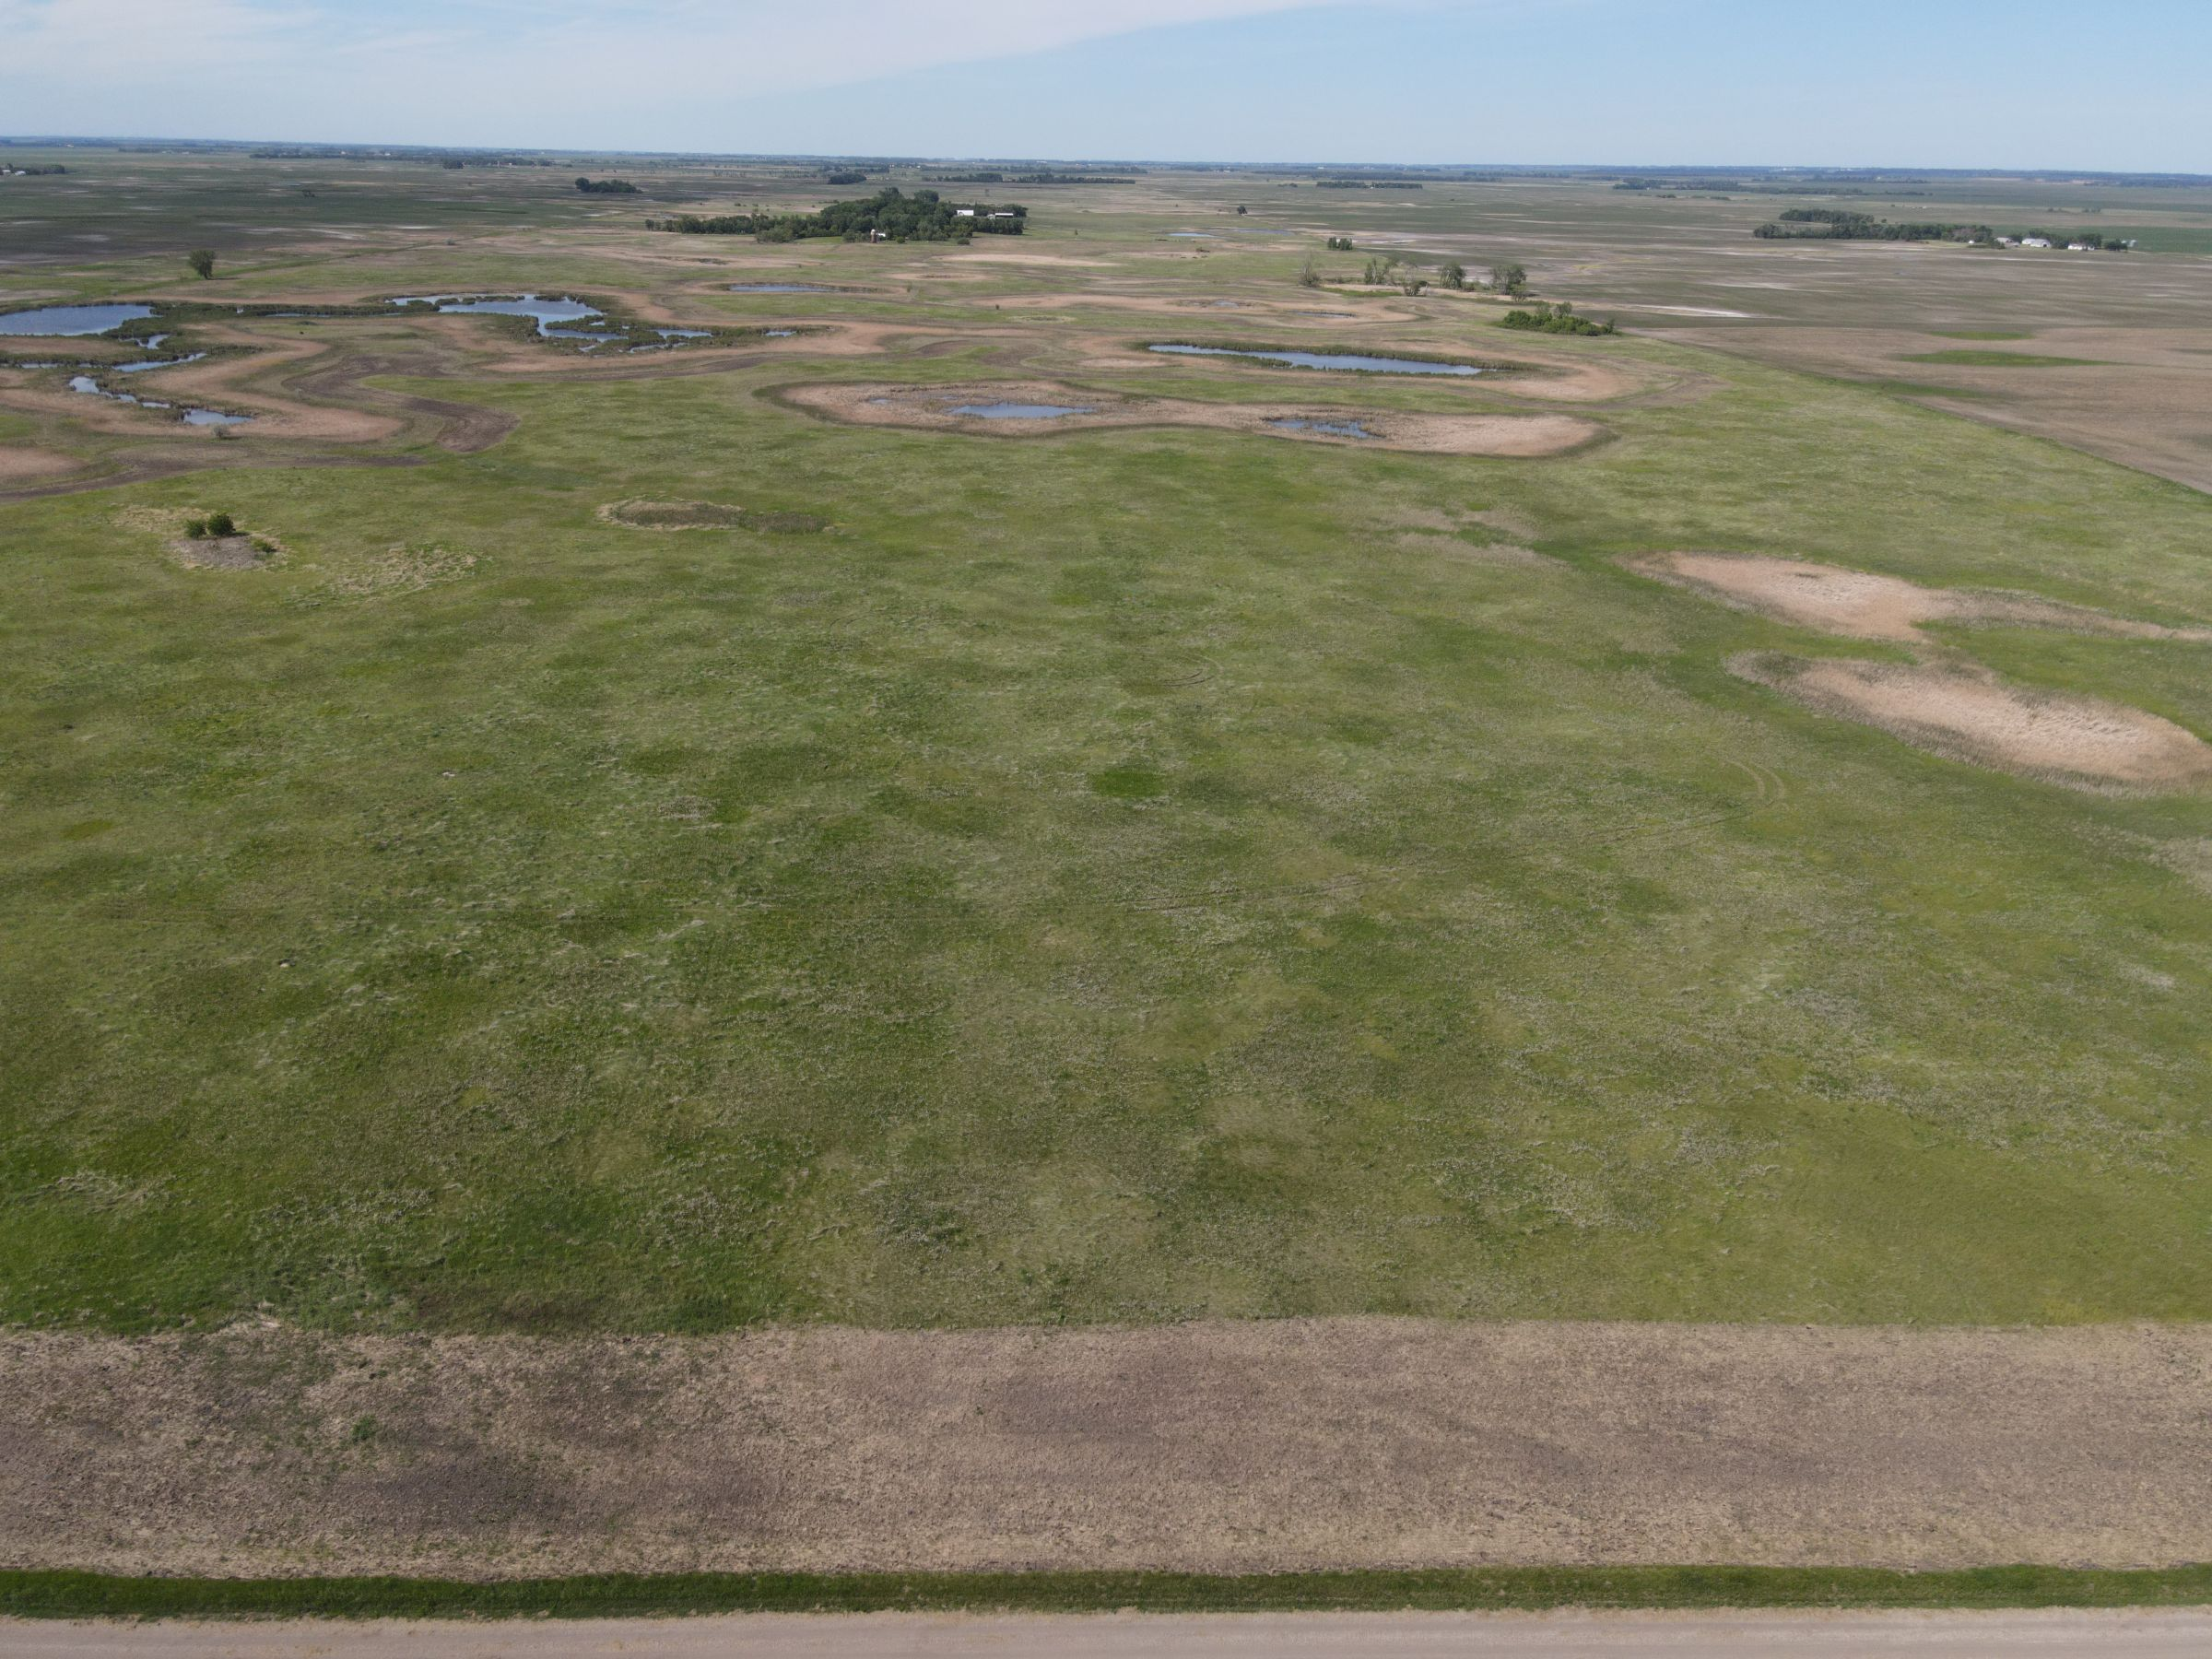 auctions-cass-county-north-dakota-320-acres-listing-number-15590-1-2021-06-22-191230.JPG